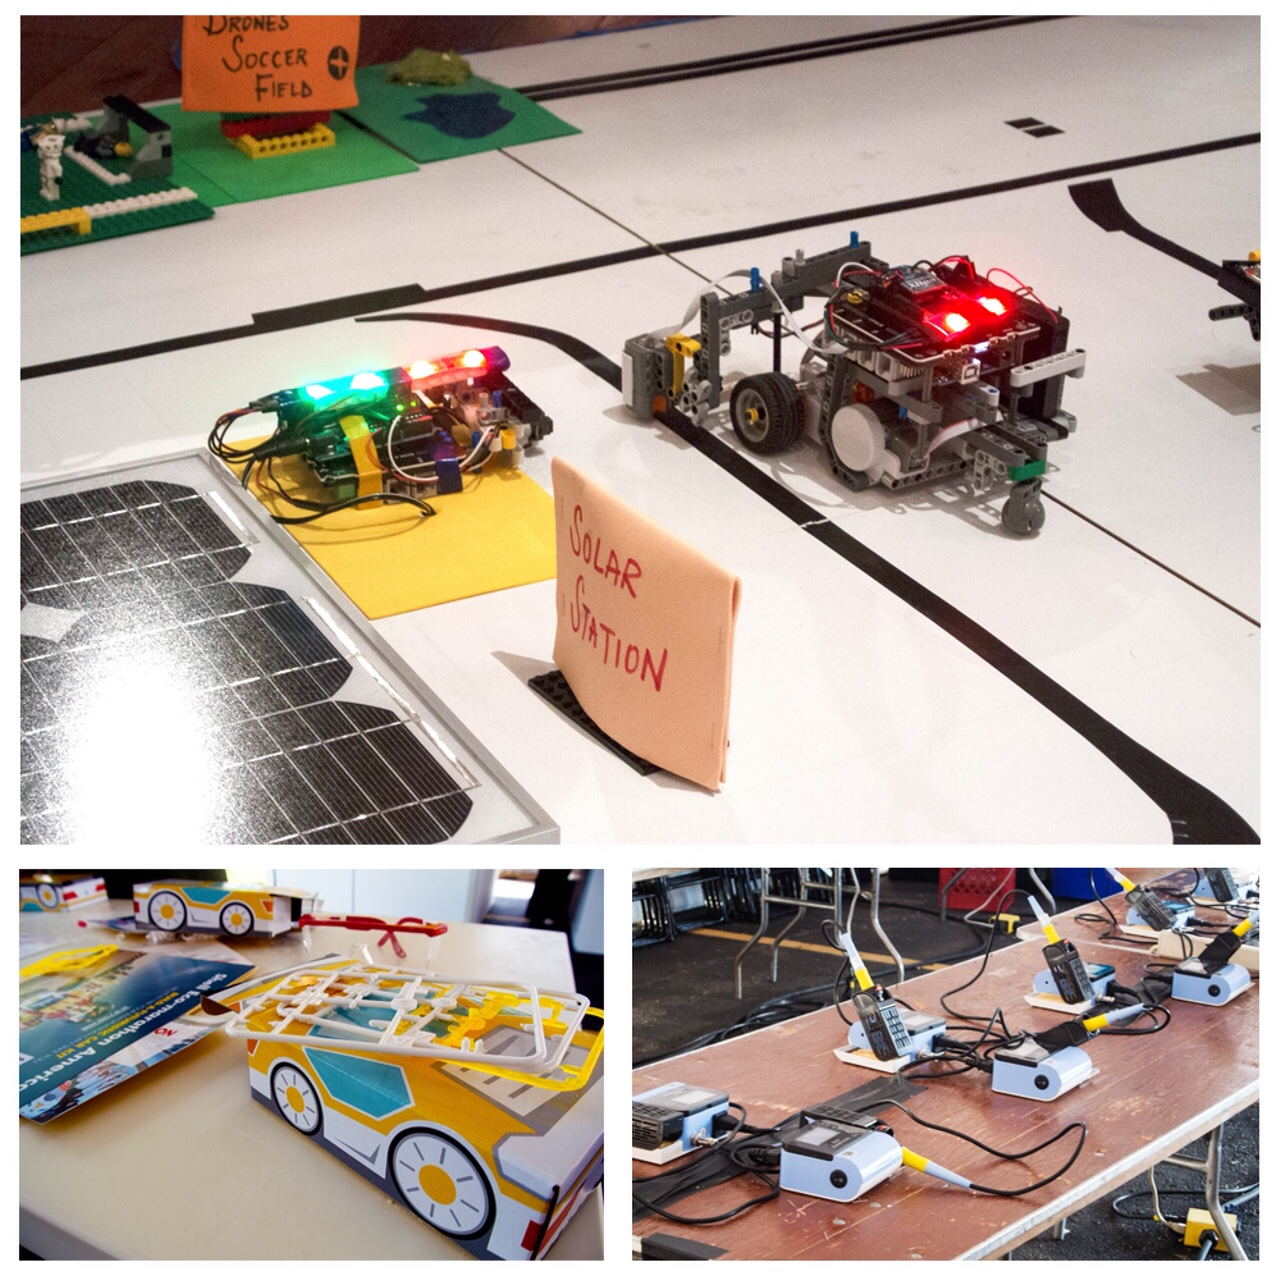 Top – LEGO car that was built and programmed by youth; Bottom Left – Saltwater powered car building kits; Bottom Right – Soldering irons setup to make LED buttons